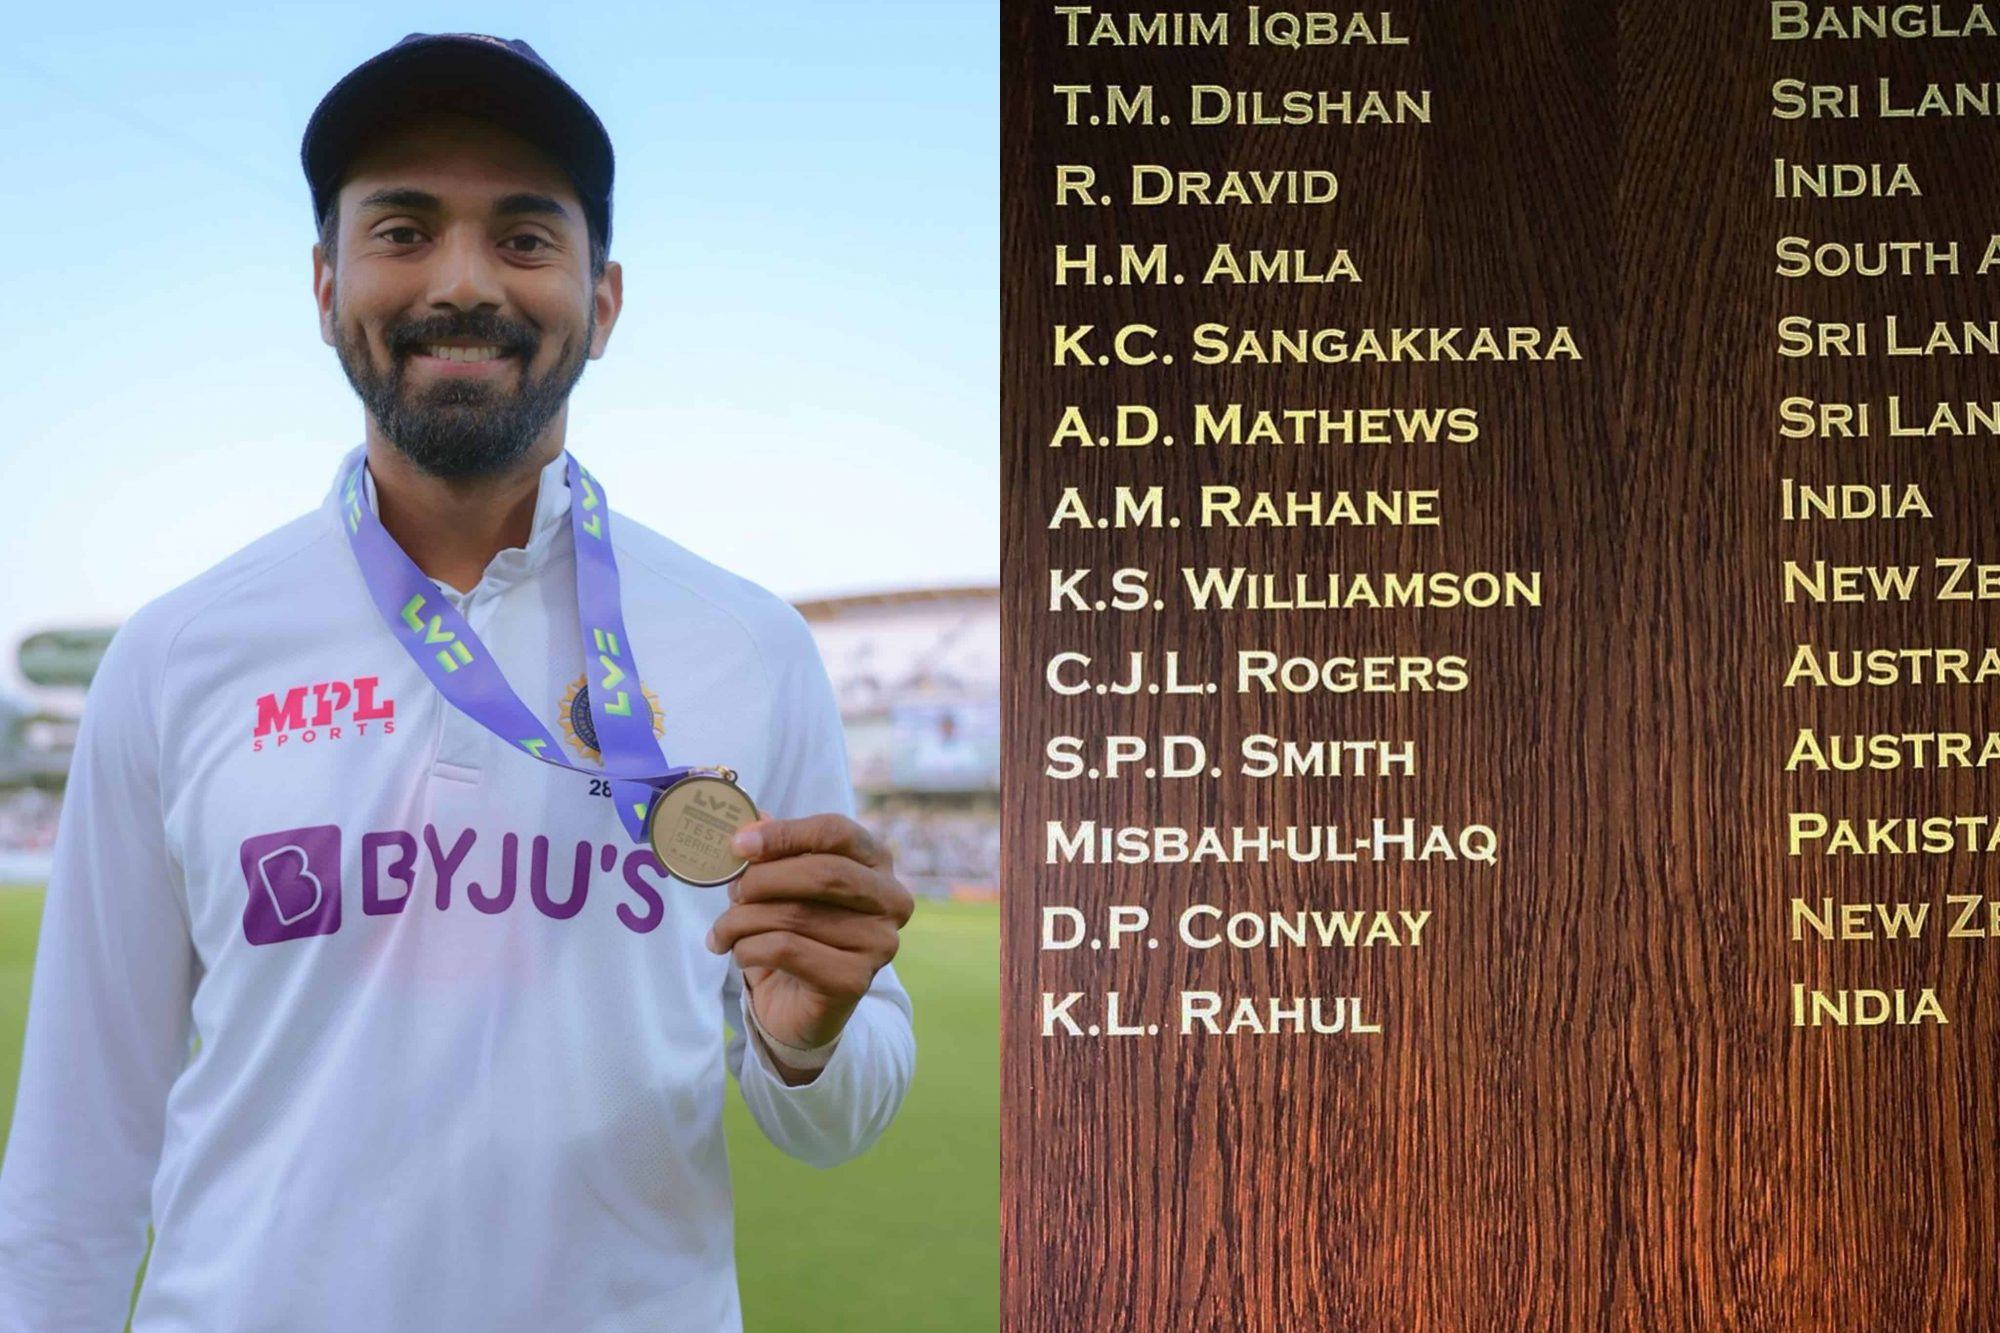 KL Rahul's Name Etched In Gold On The Lord's Honours Board